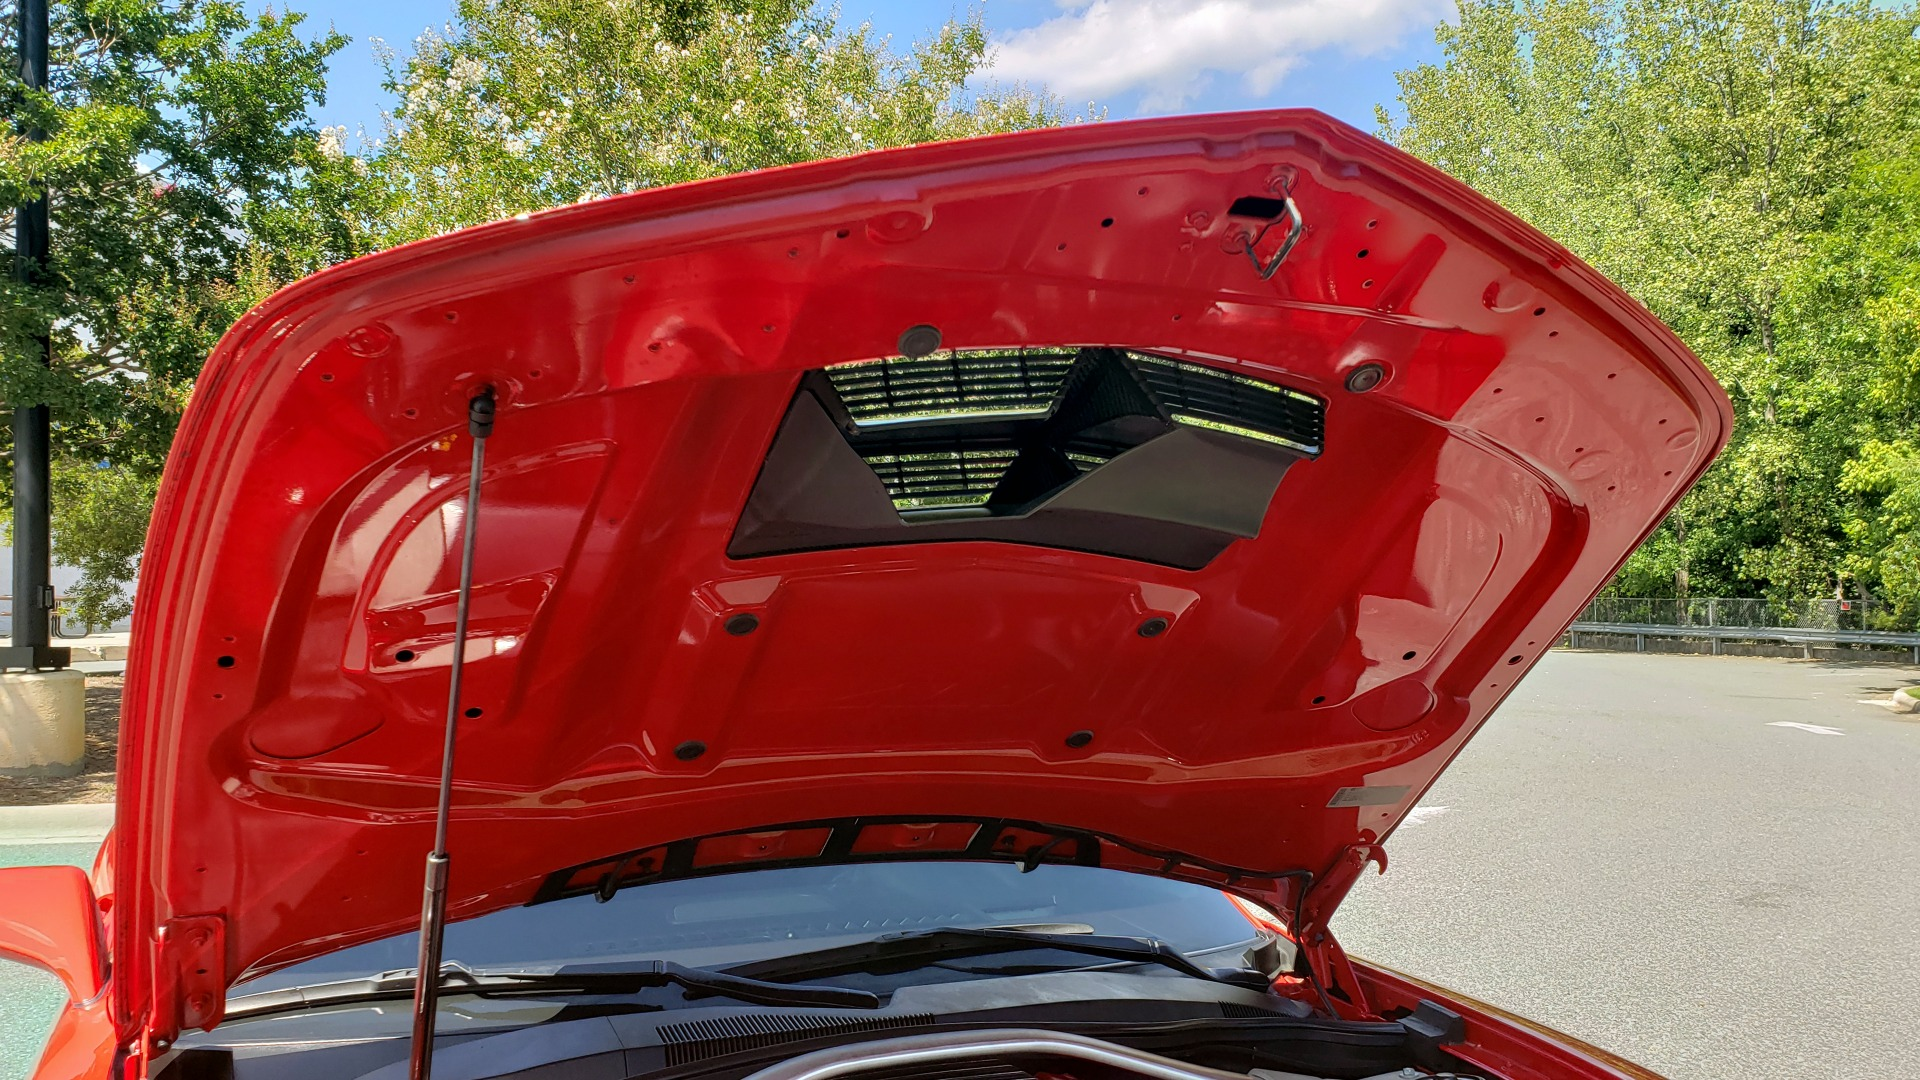 Used 2013 Chevrolet CAMARO ZL1 580HP / AUTO / NAV / BOSTON ACOUSTIC SND / REARVIEW for sale $40,995 at Formula Imports in Charlotte NC 28227 23